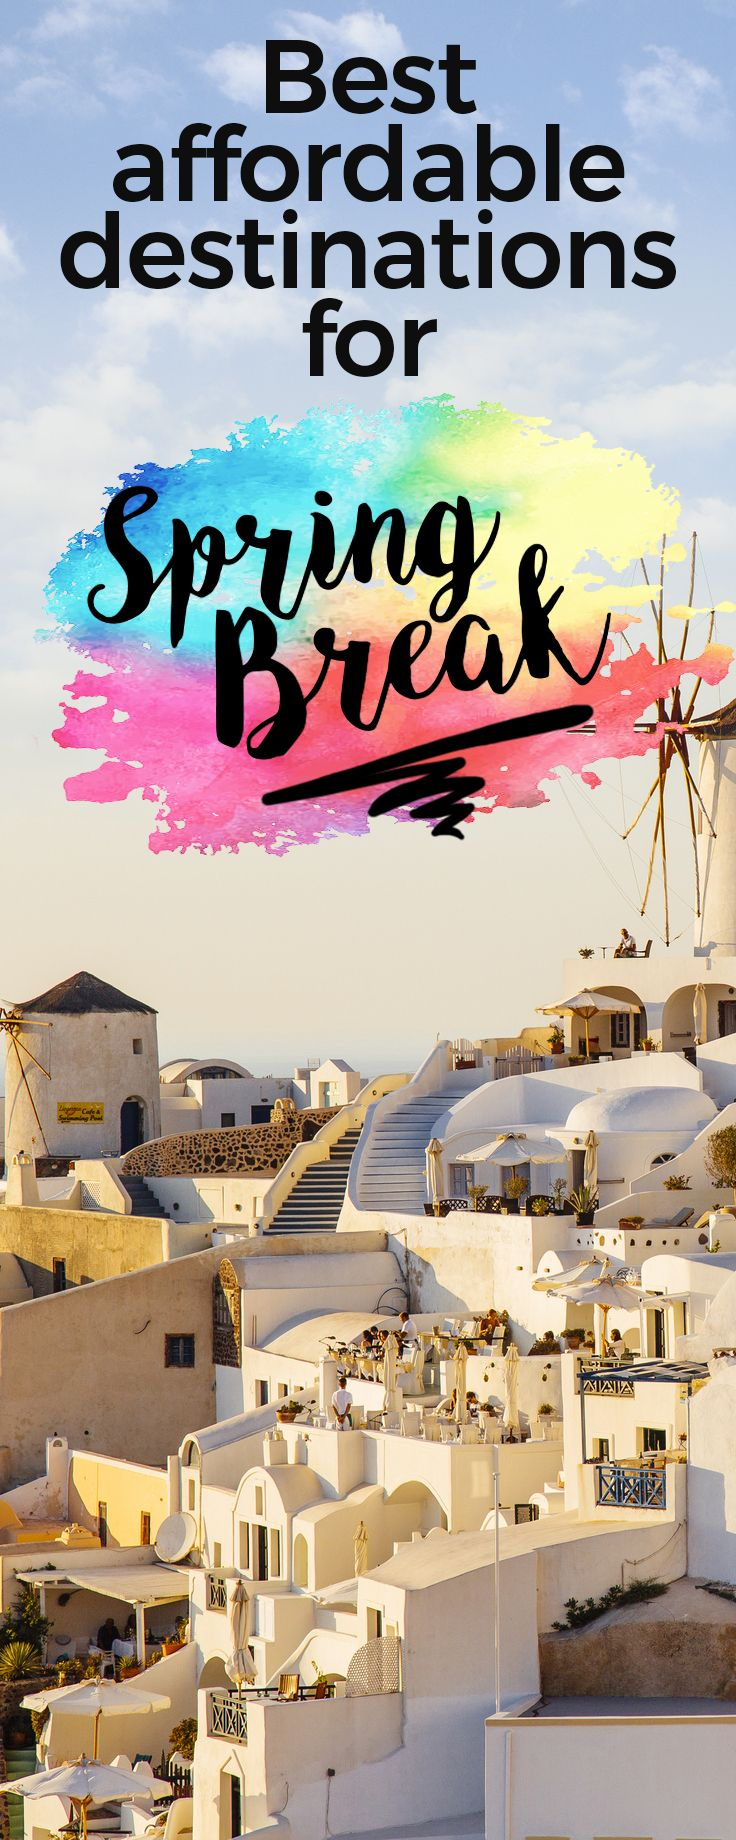 Travel tip: Here are some best places to travel that made our list if you want to avoid crowded parties and just relax over the spring break. These spots make it the most unforgettable vacation ever.